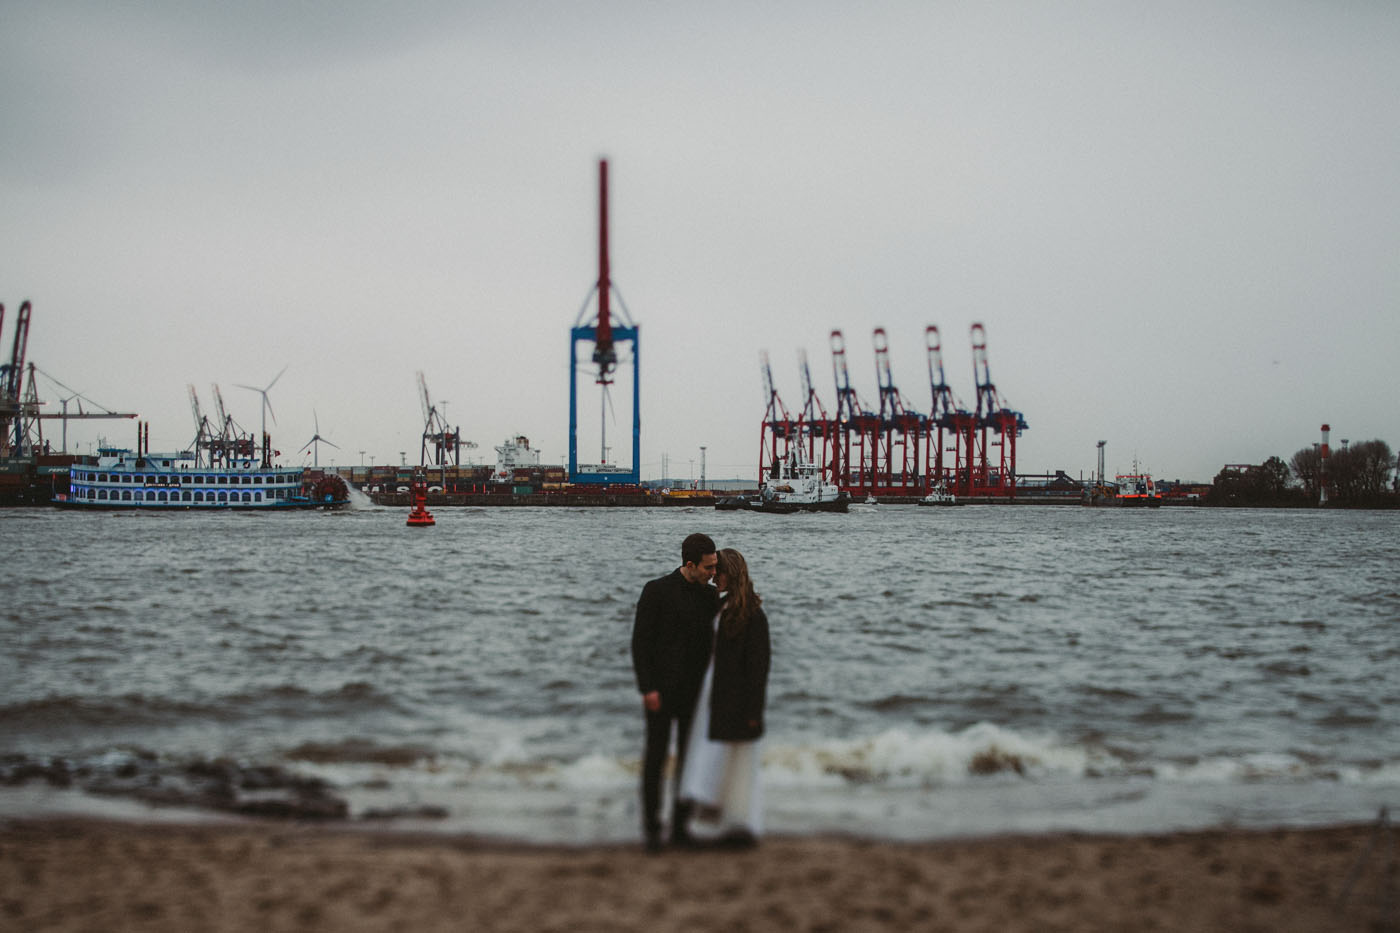 wedding-photographer-hamburg-8